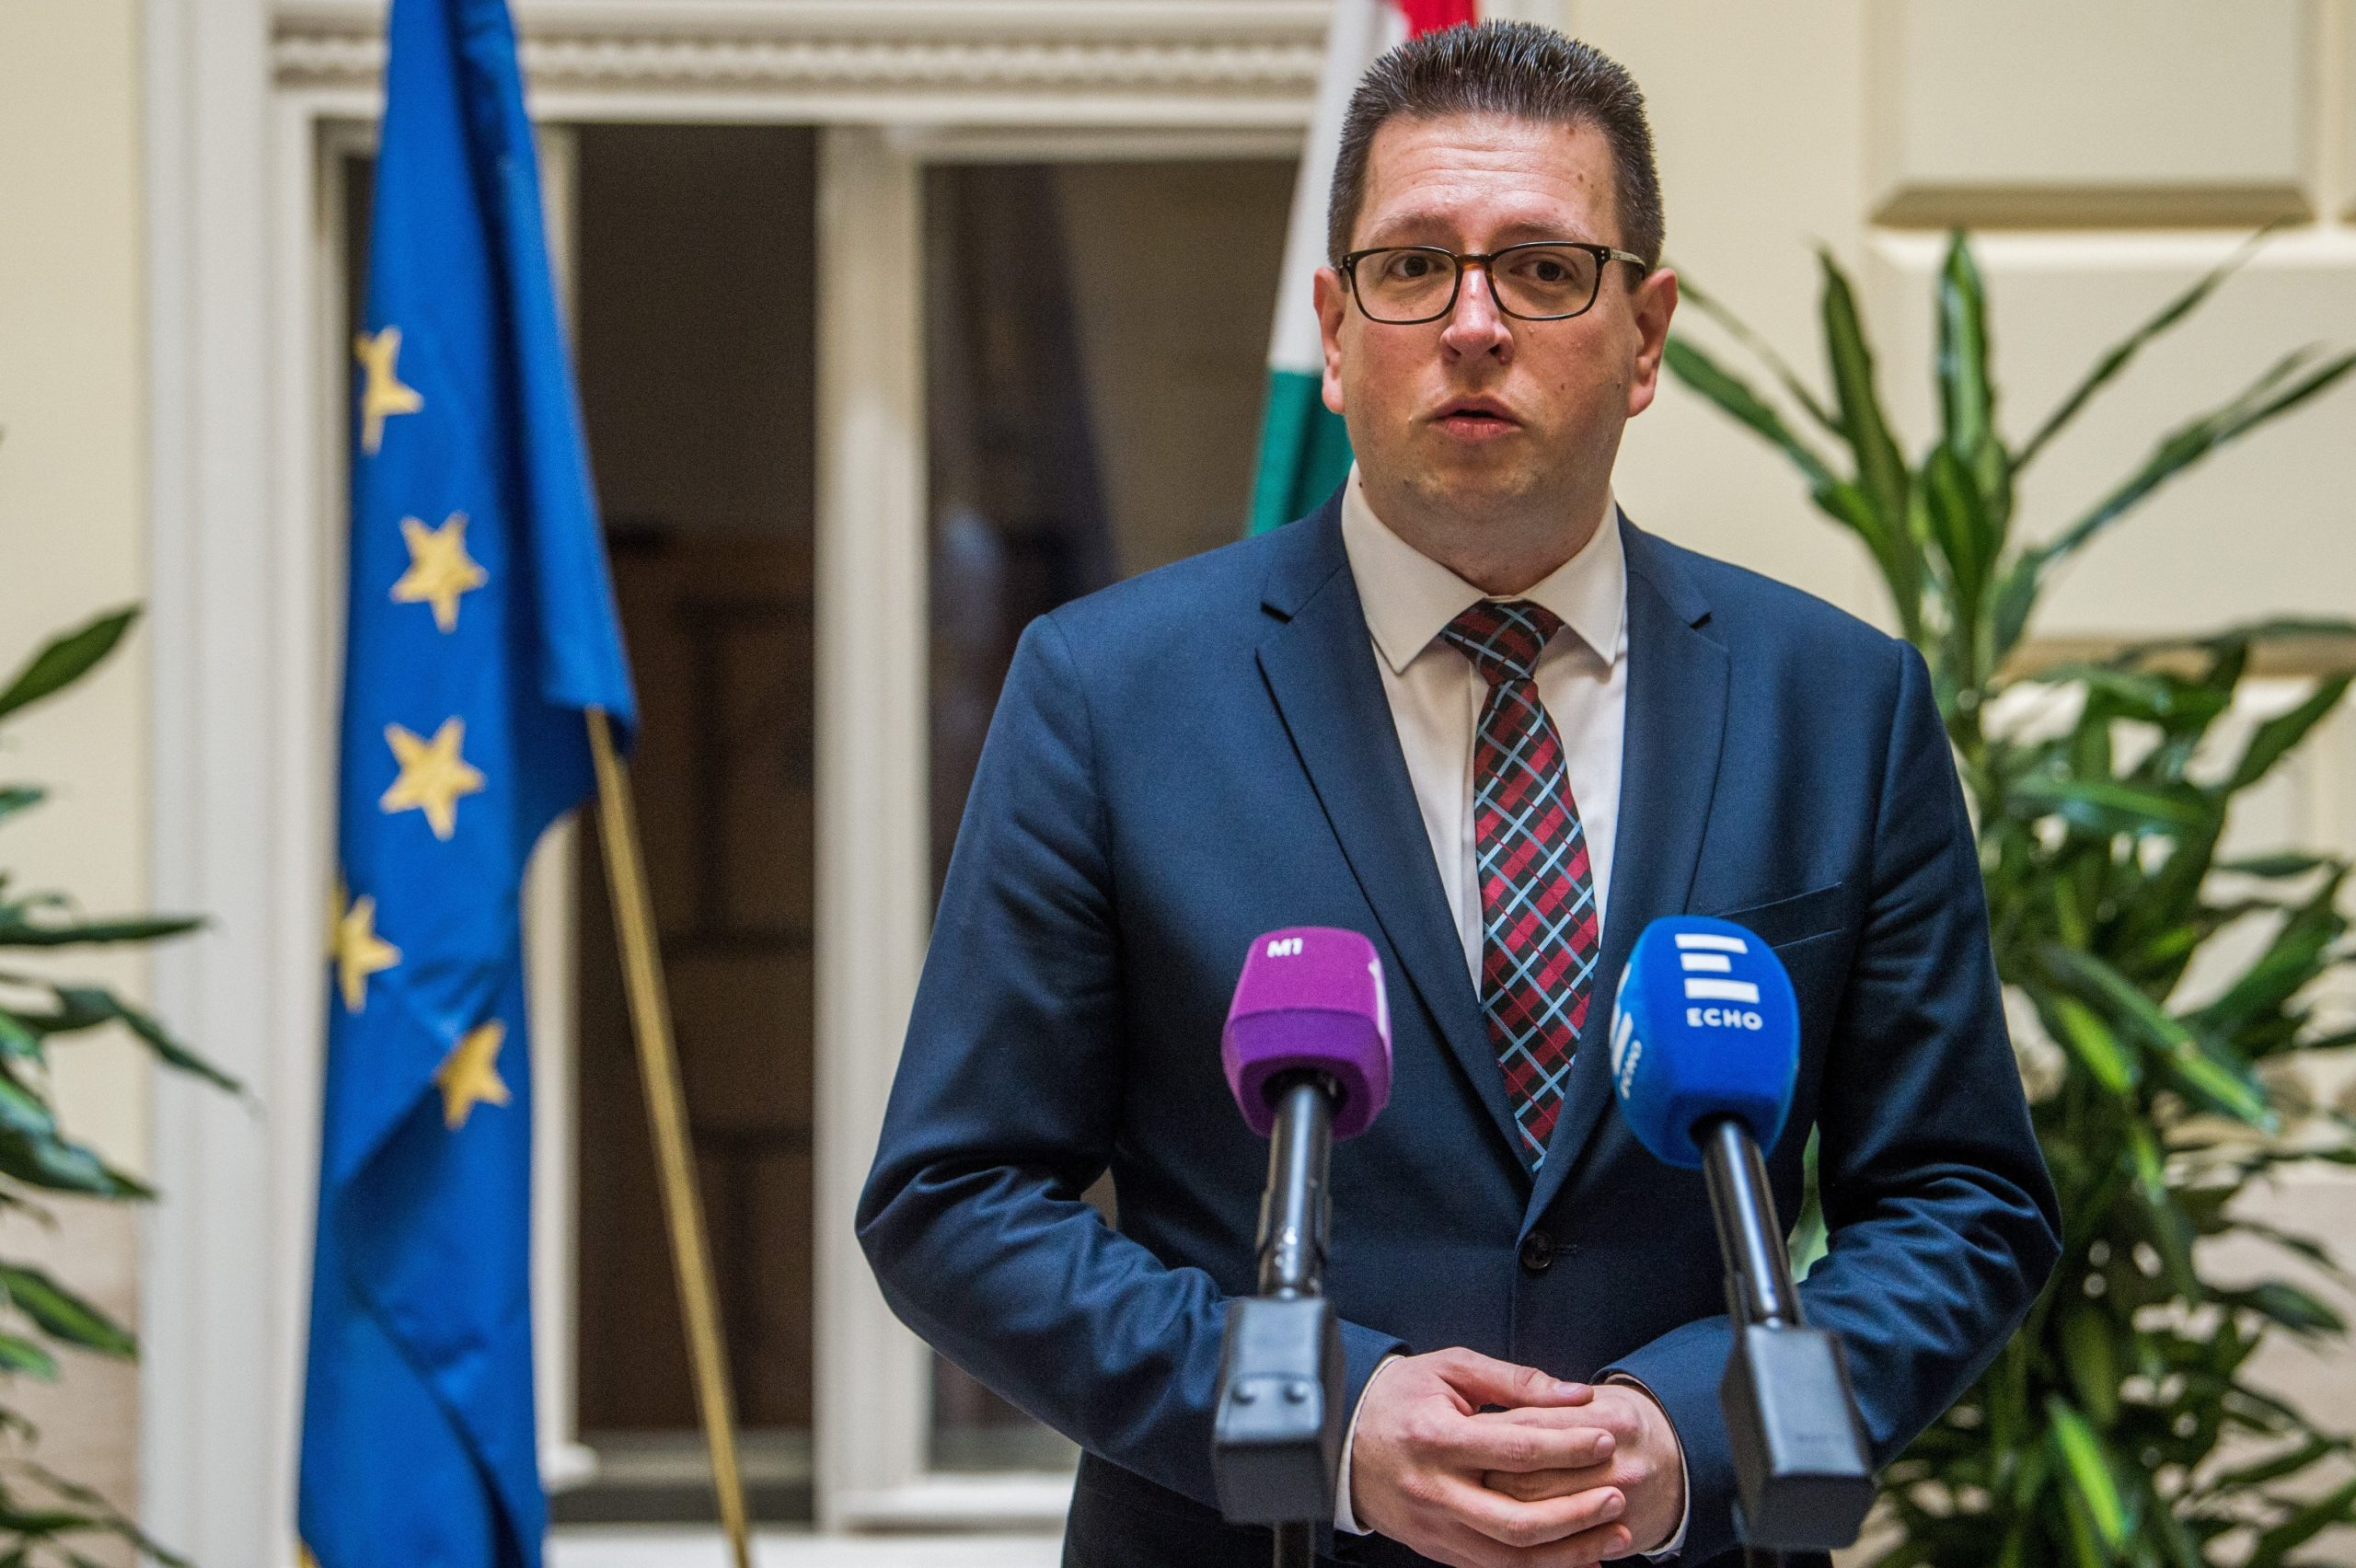 'The Commission is Living in a Parallel Reality' - FUEN President Loránt Vincze on the Rejection of Minority SafePack